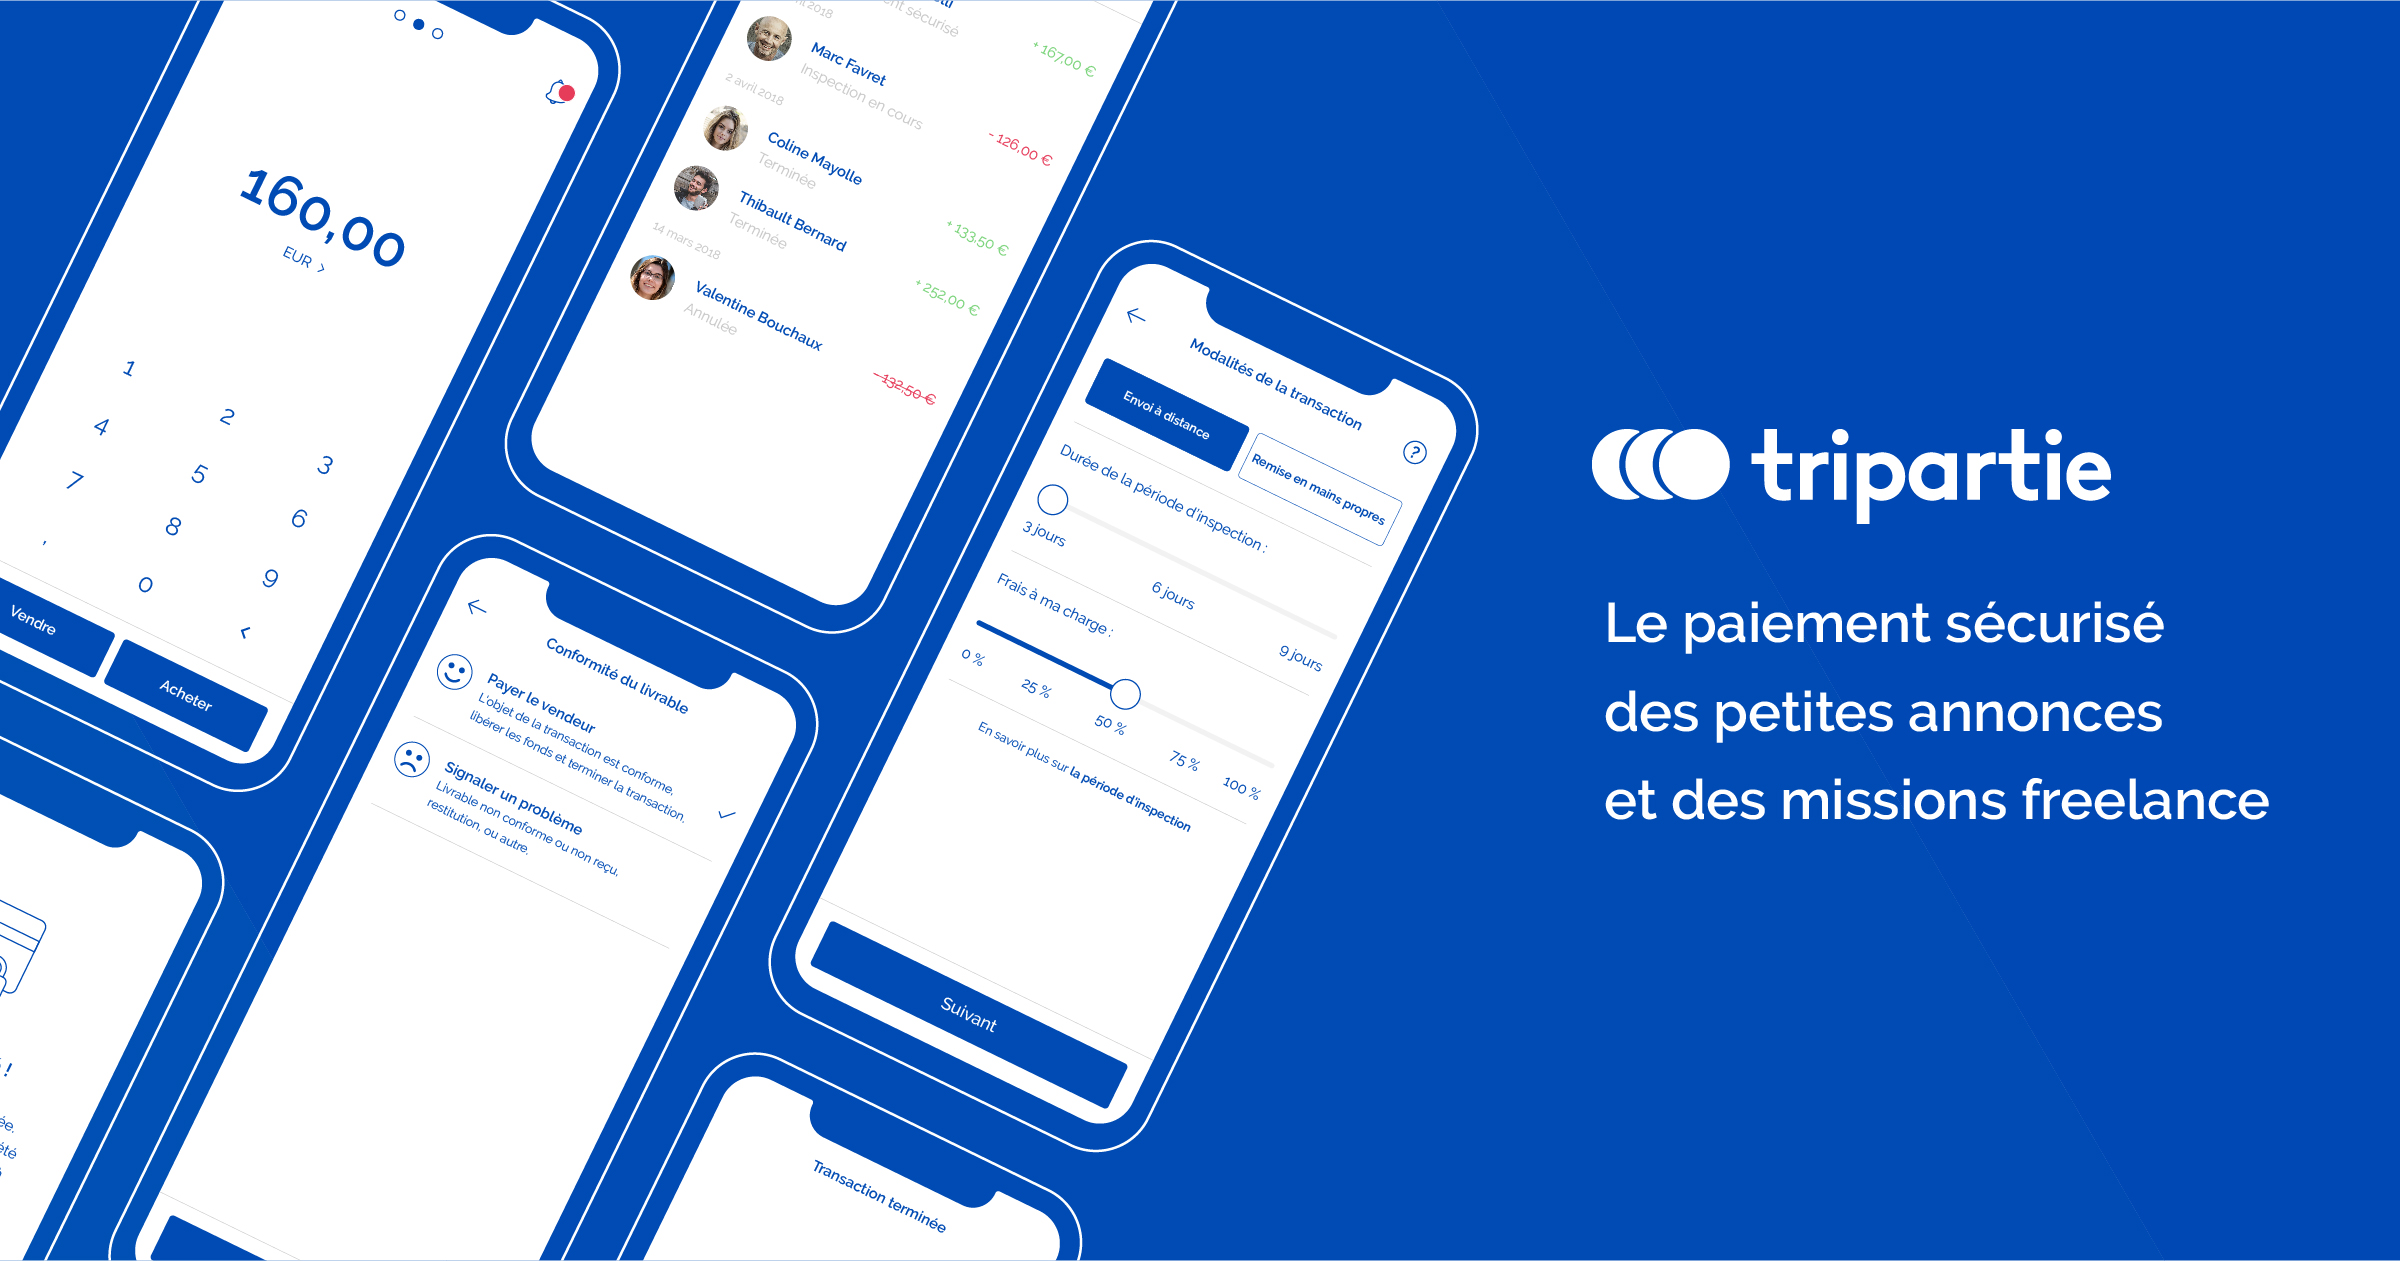 Tripartie mobile application